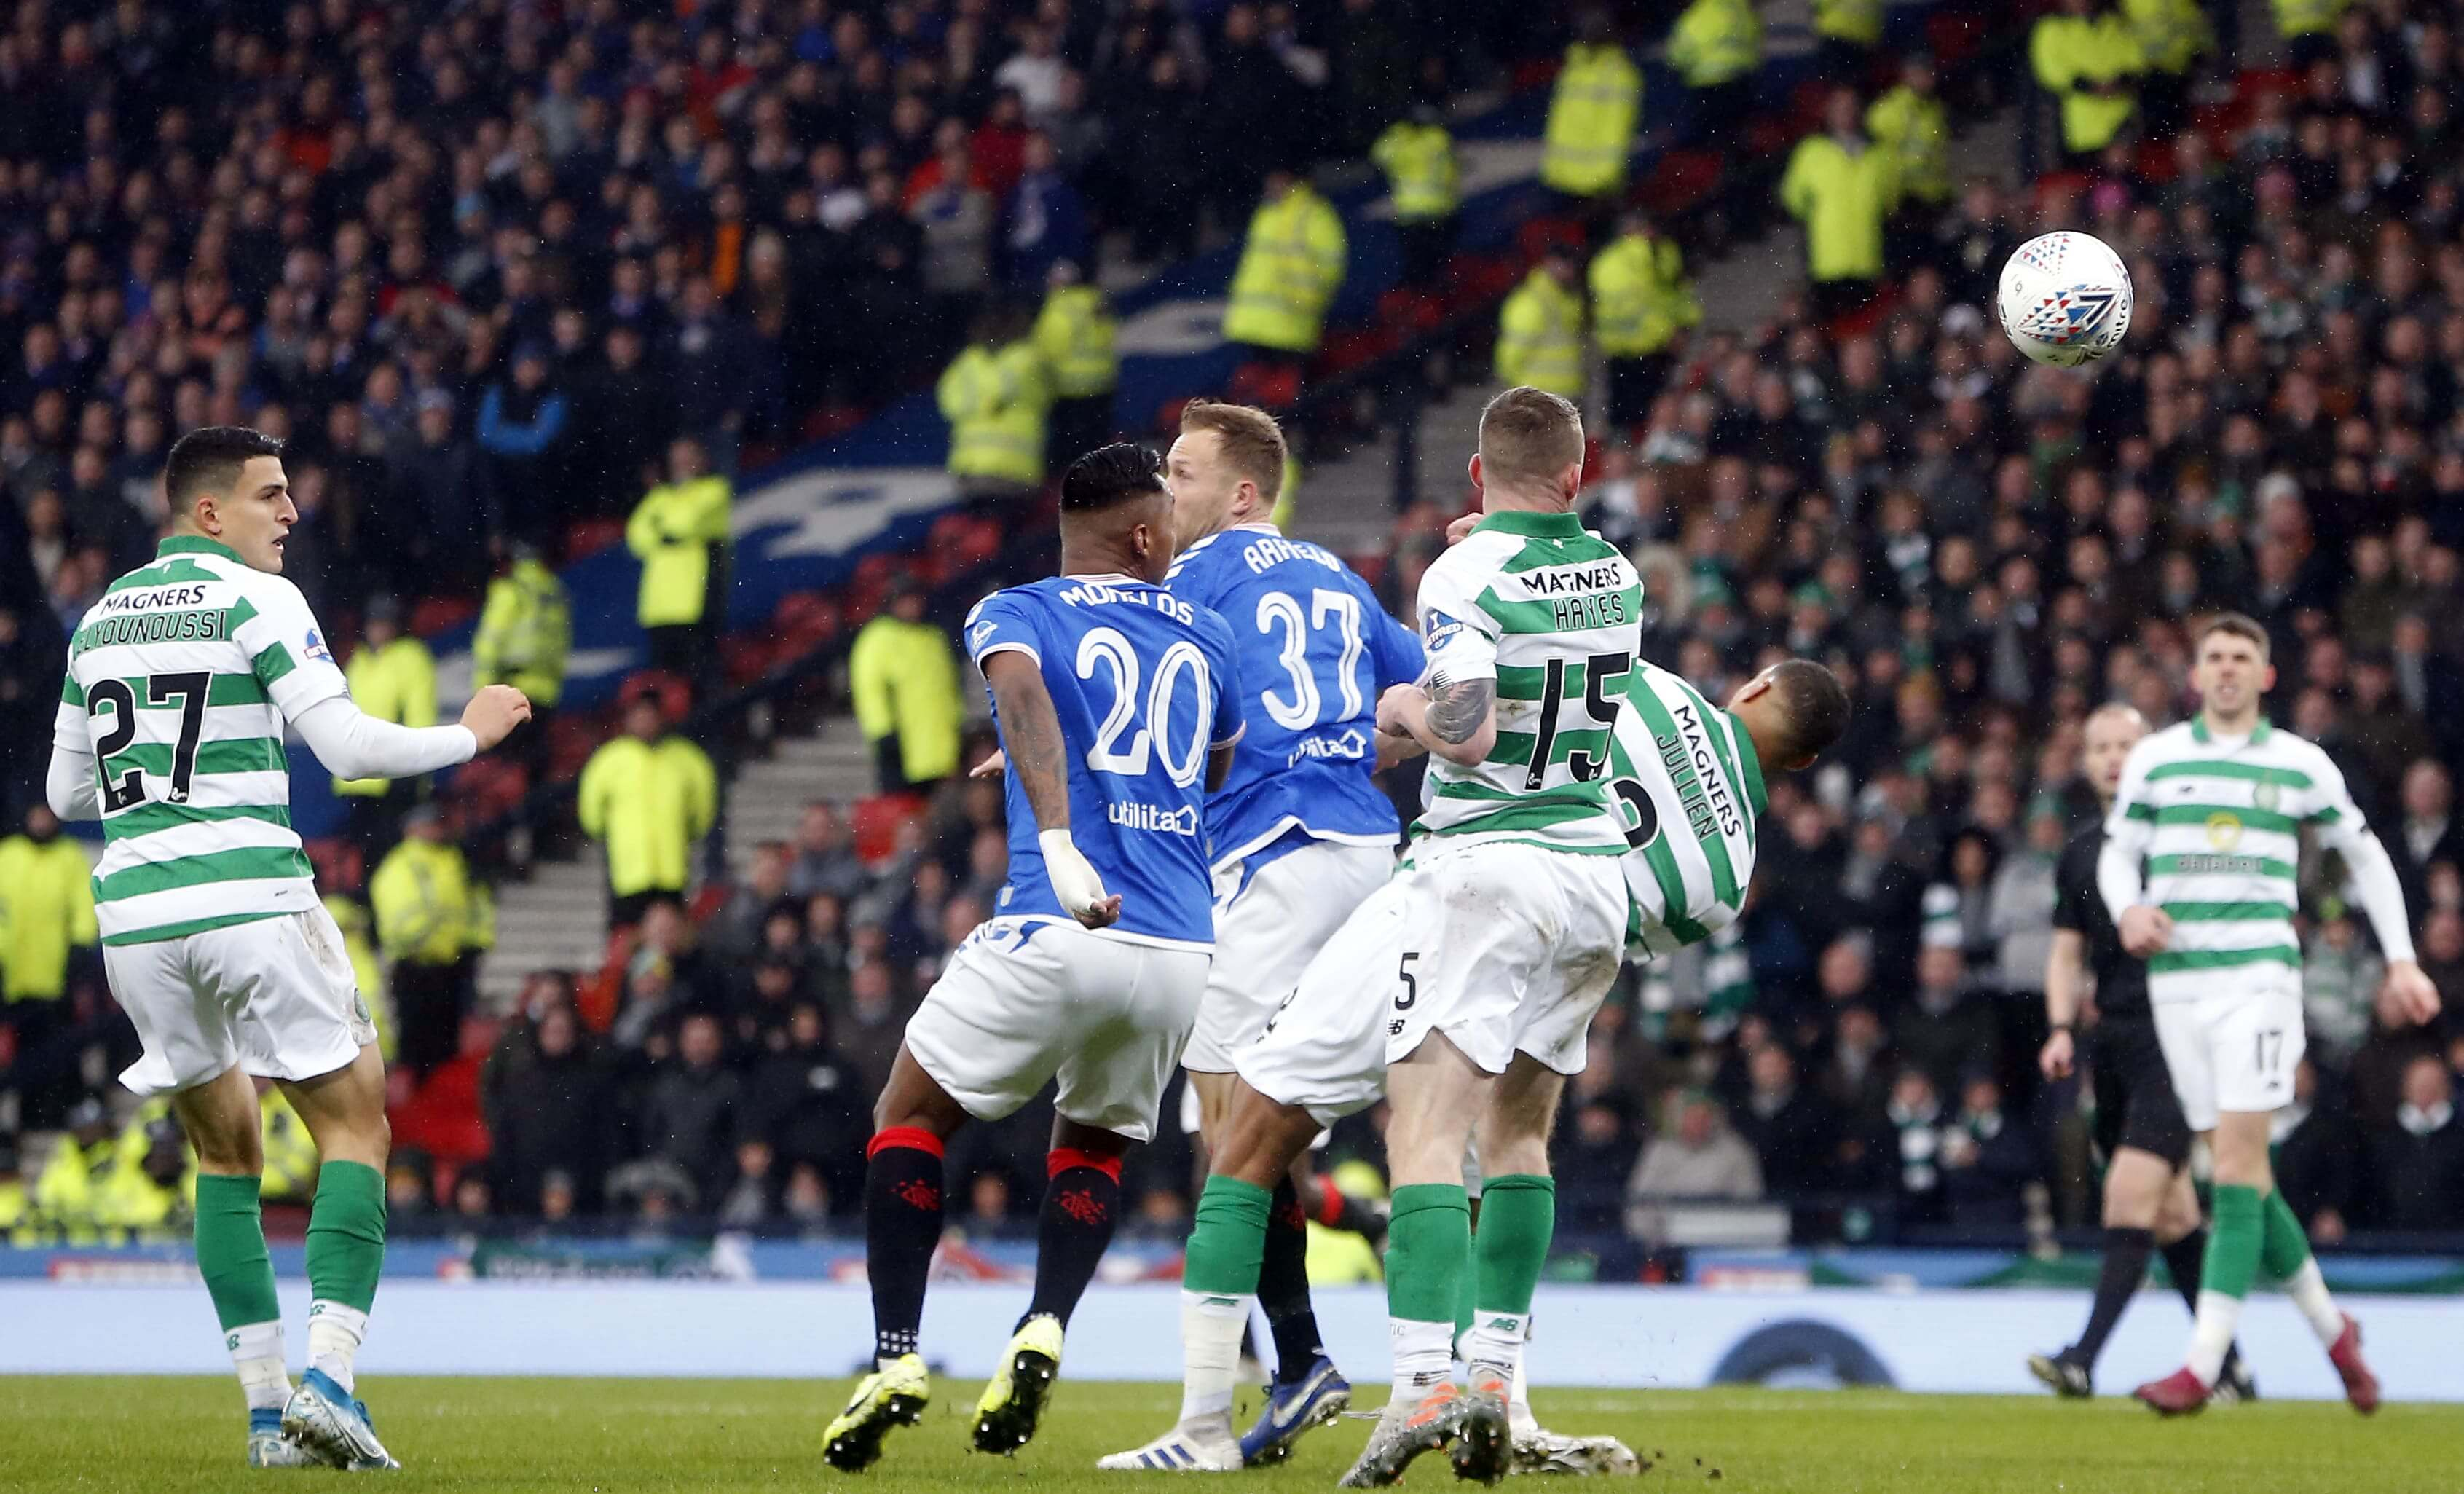 Celtic v Rangers: All to play for in last Old Firm game of the year